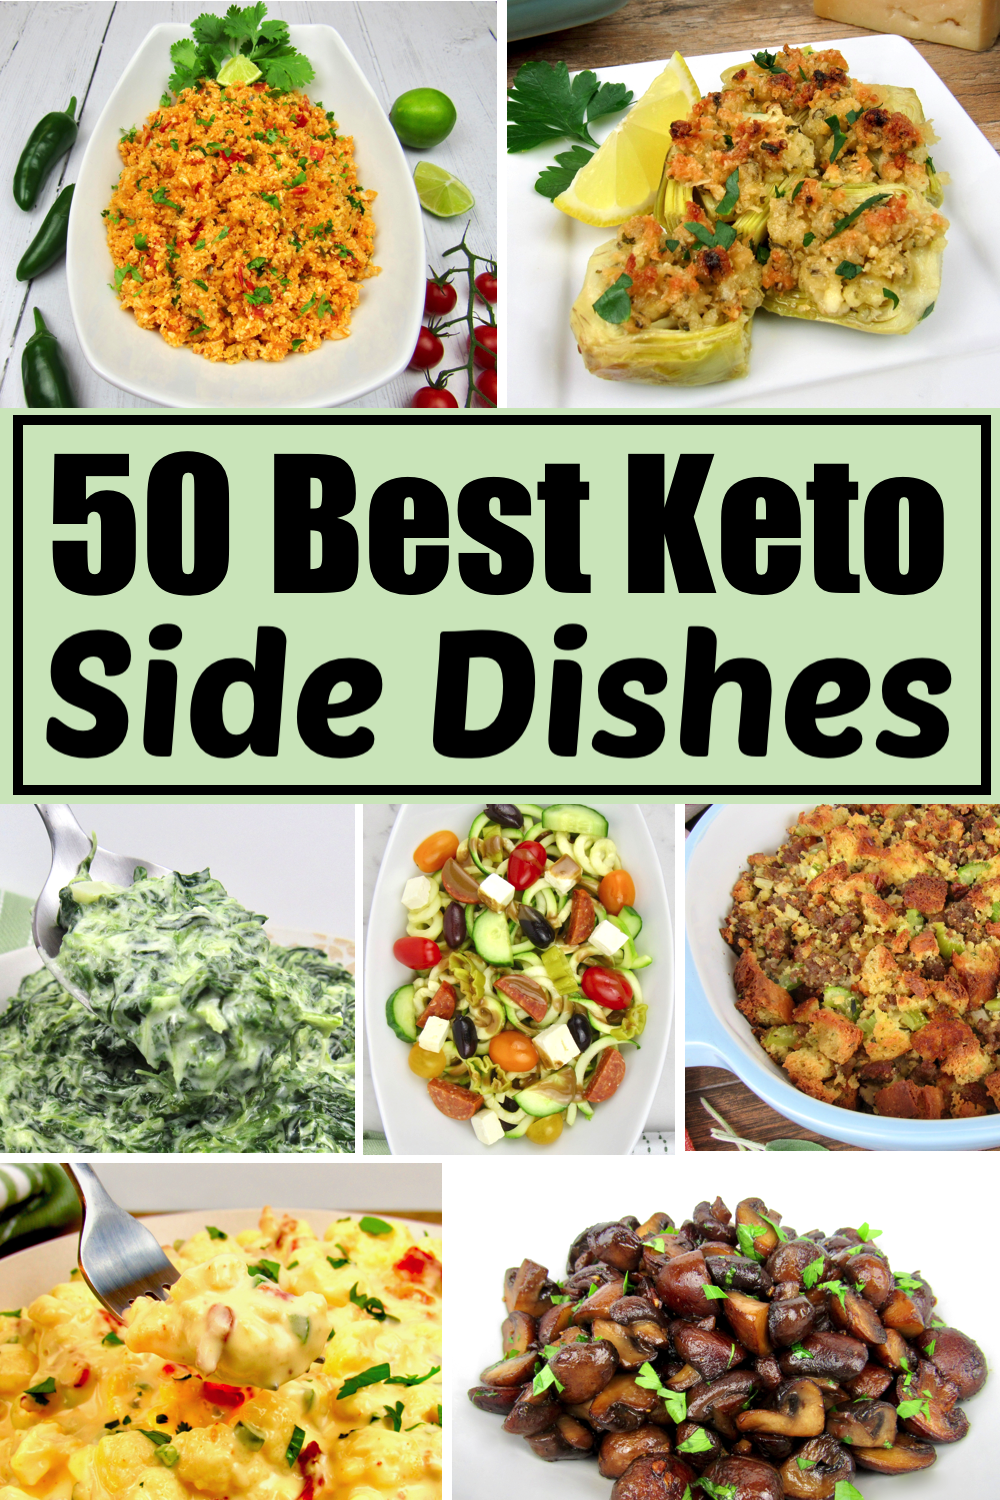 25 Best Keto Side Dish Recipes #dinnersidedishes